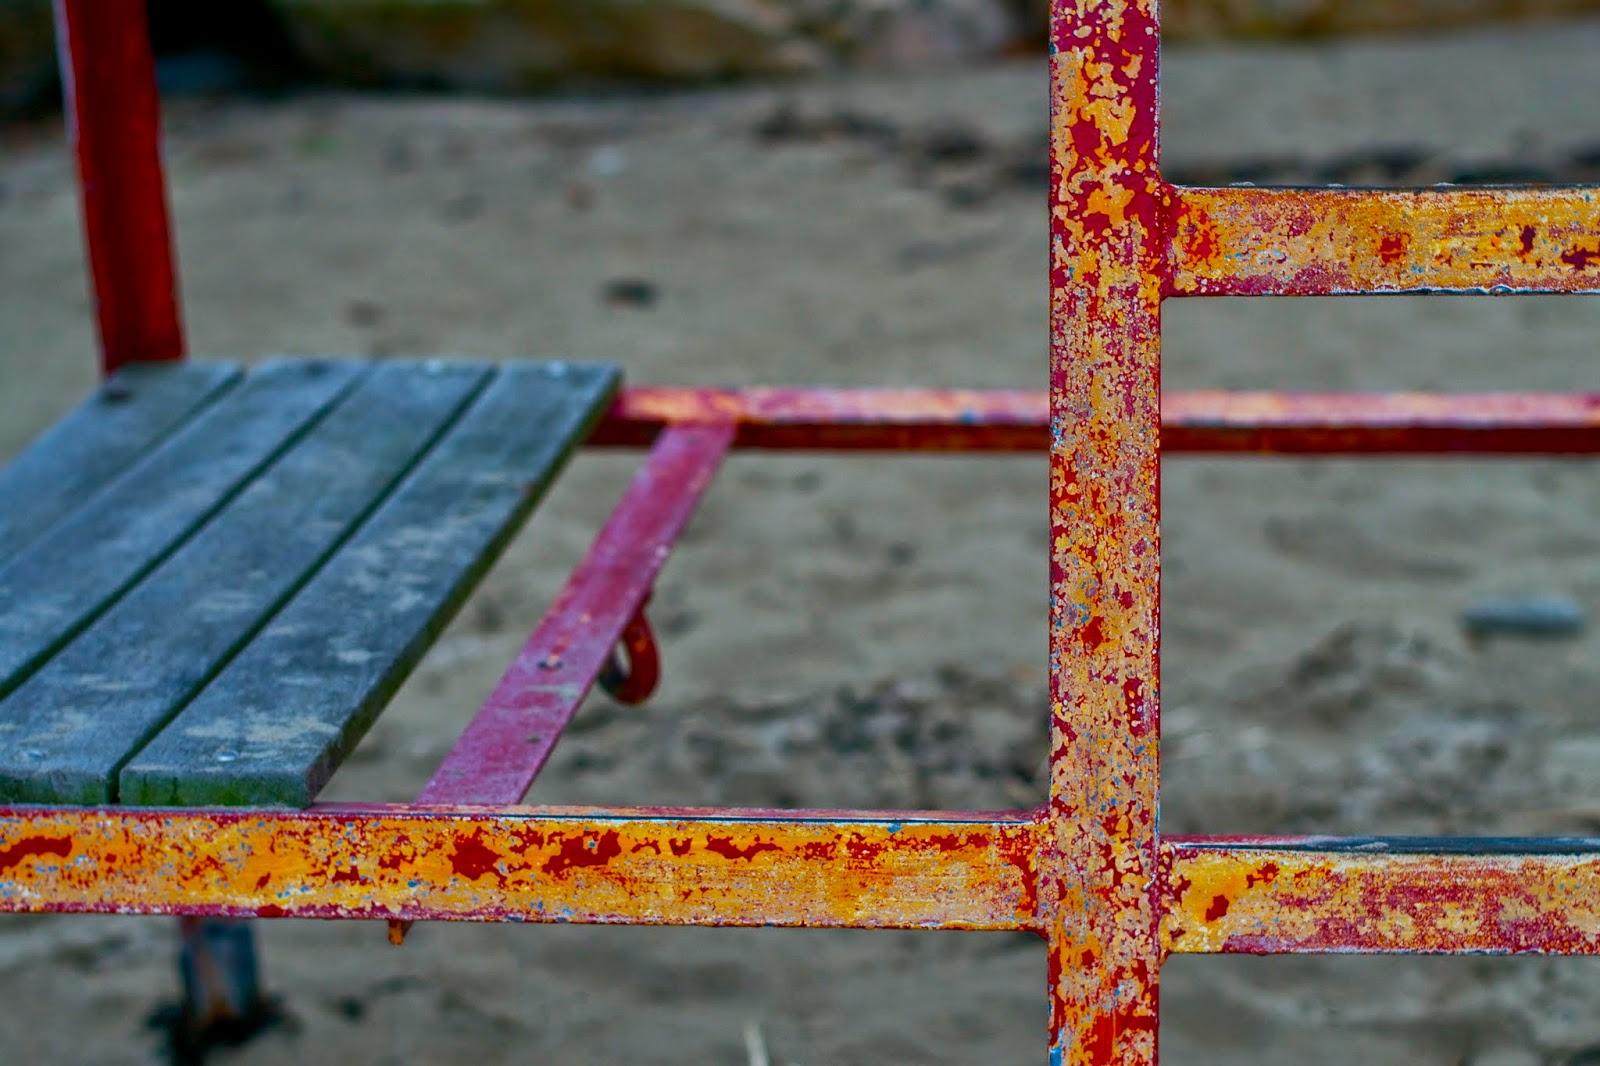 Lifeguard station, chipping paint.